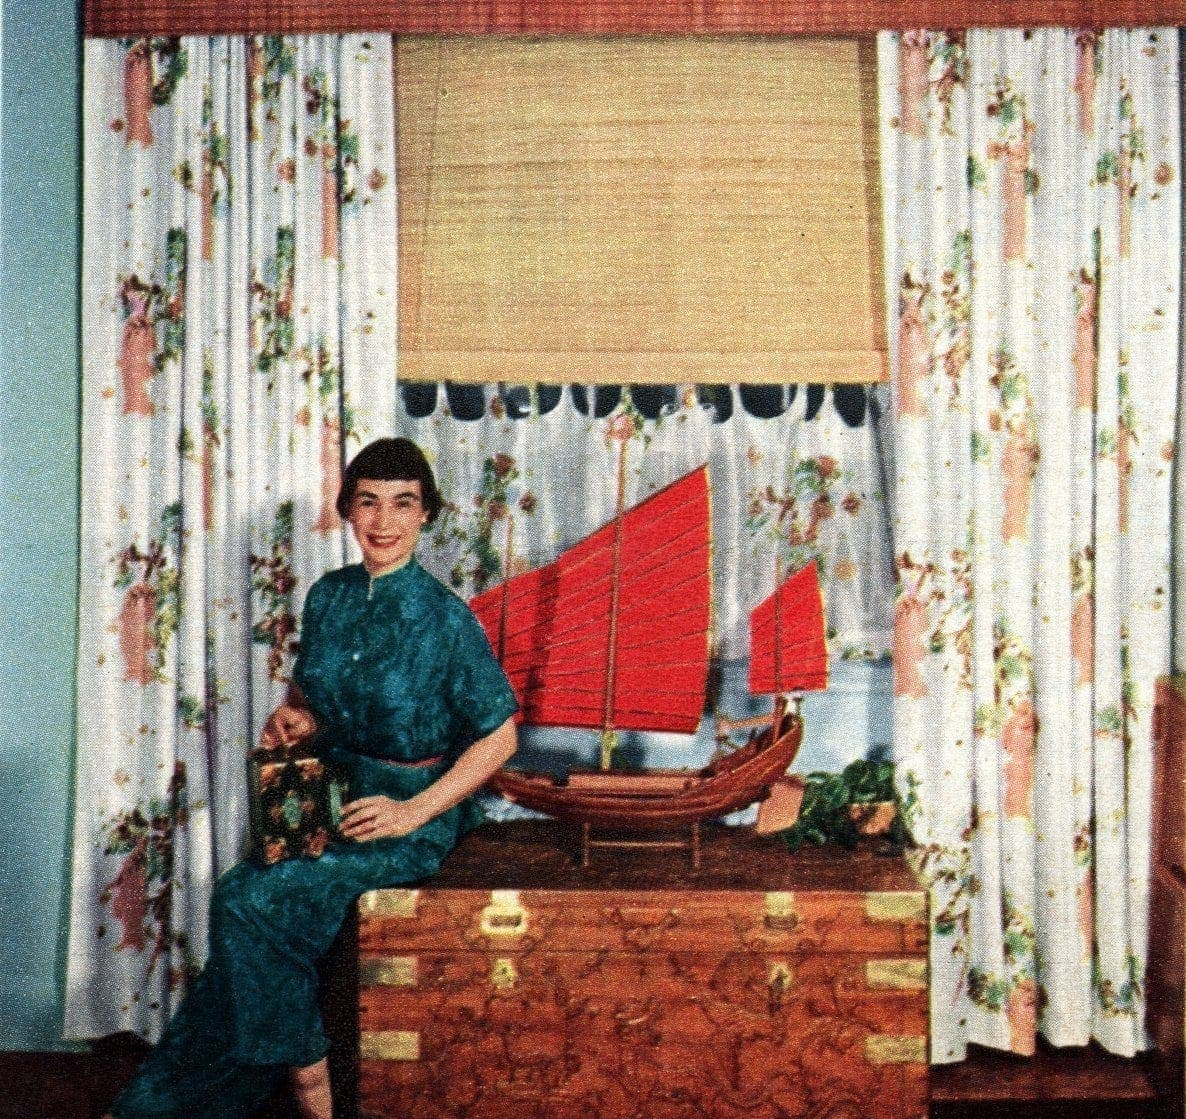 Stylish vintage window coverings from the fifties (3)